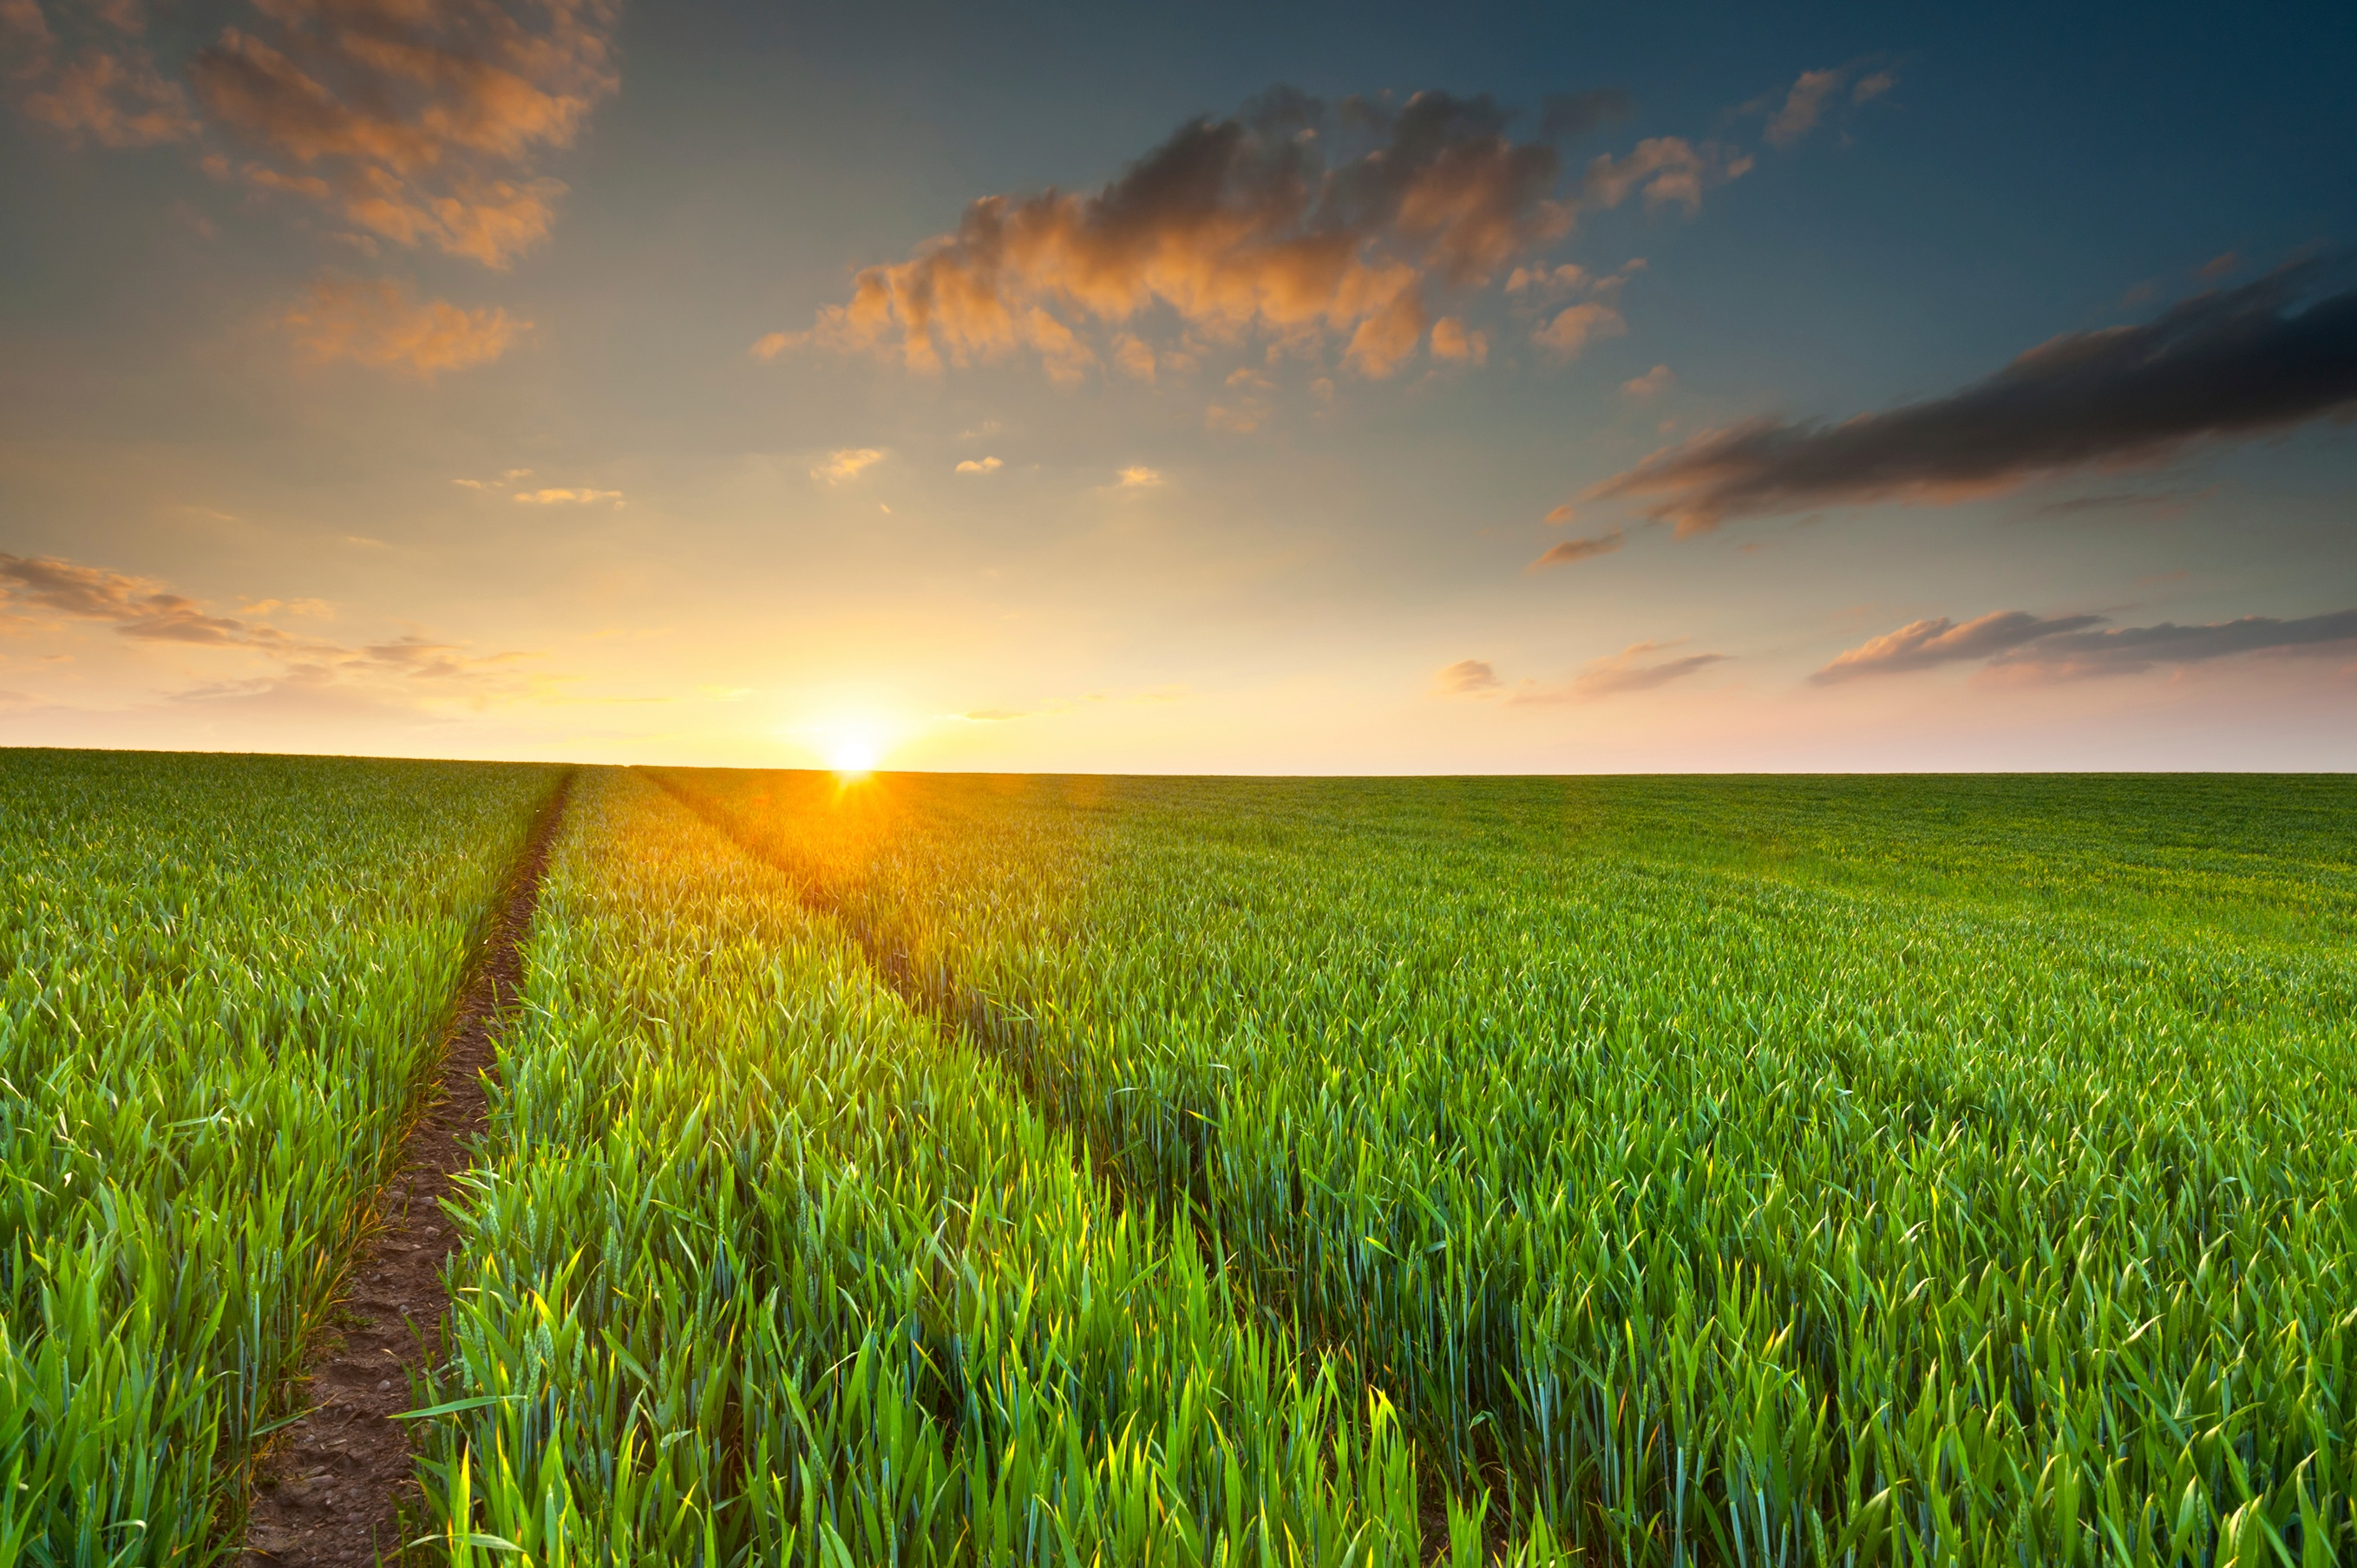 Sunset-illuminates-a-green-crop-field-000020440825_Large.jpg